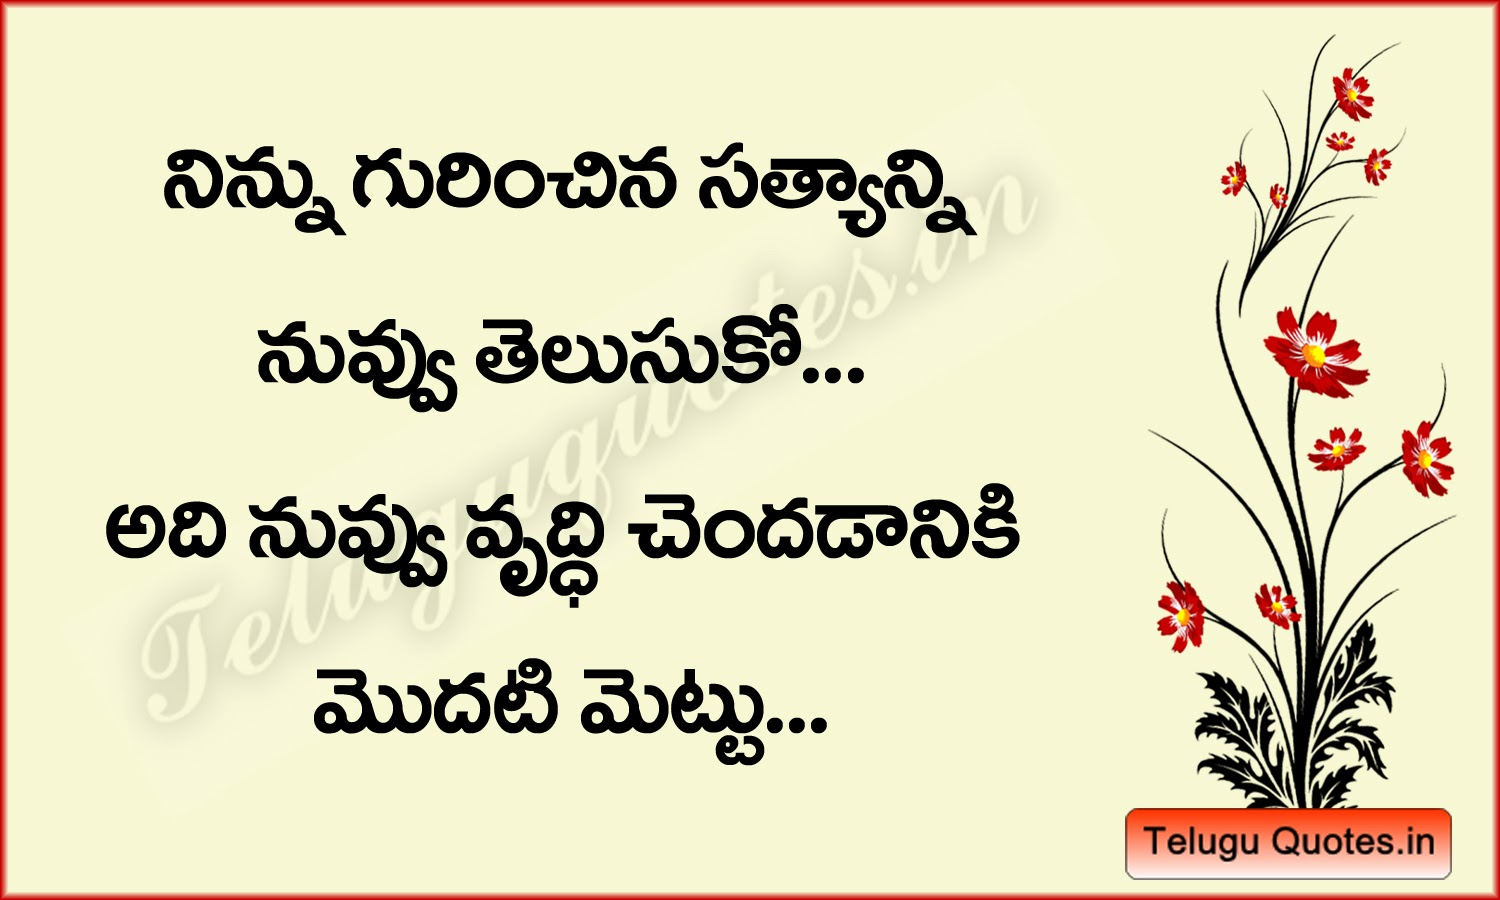 Telugu famous quotes about me quotesgram for Cuisine meaning in telugu